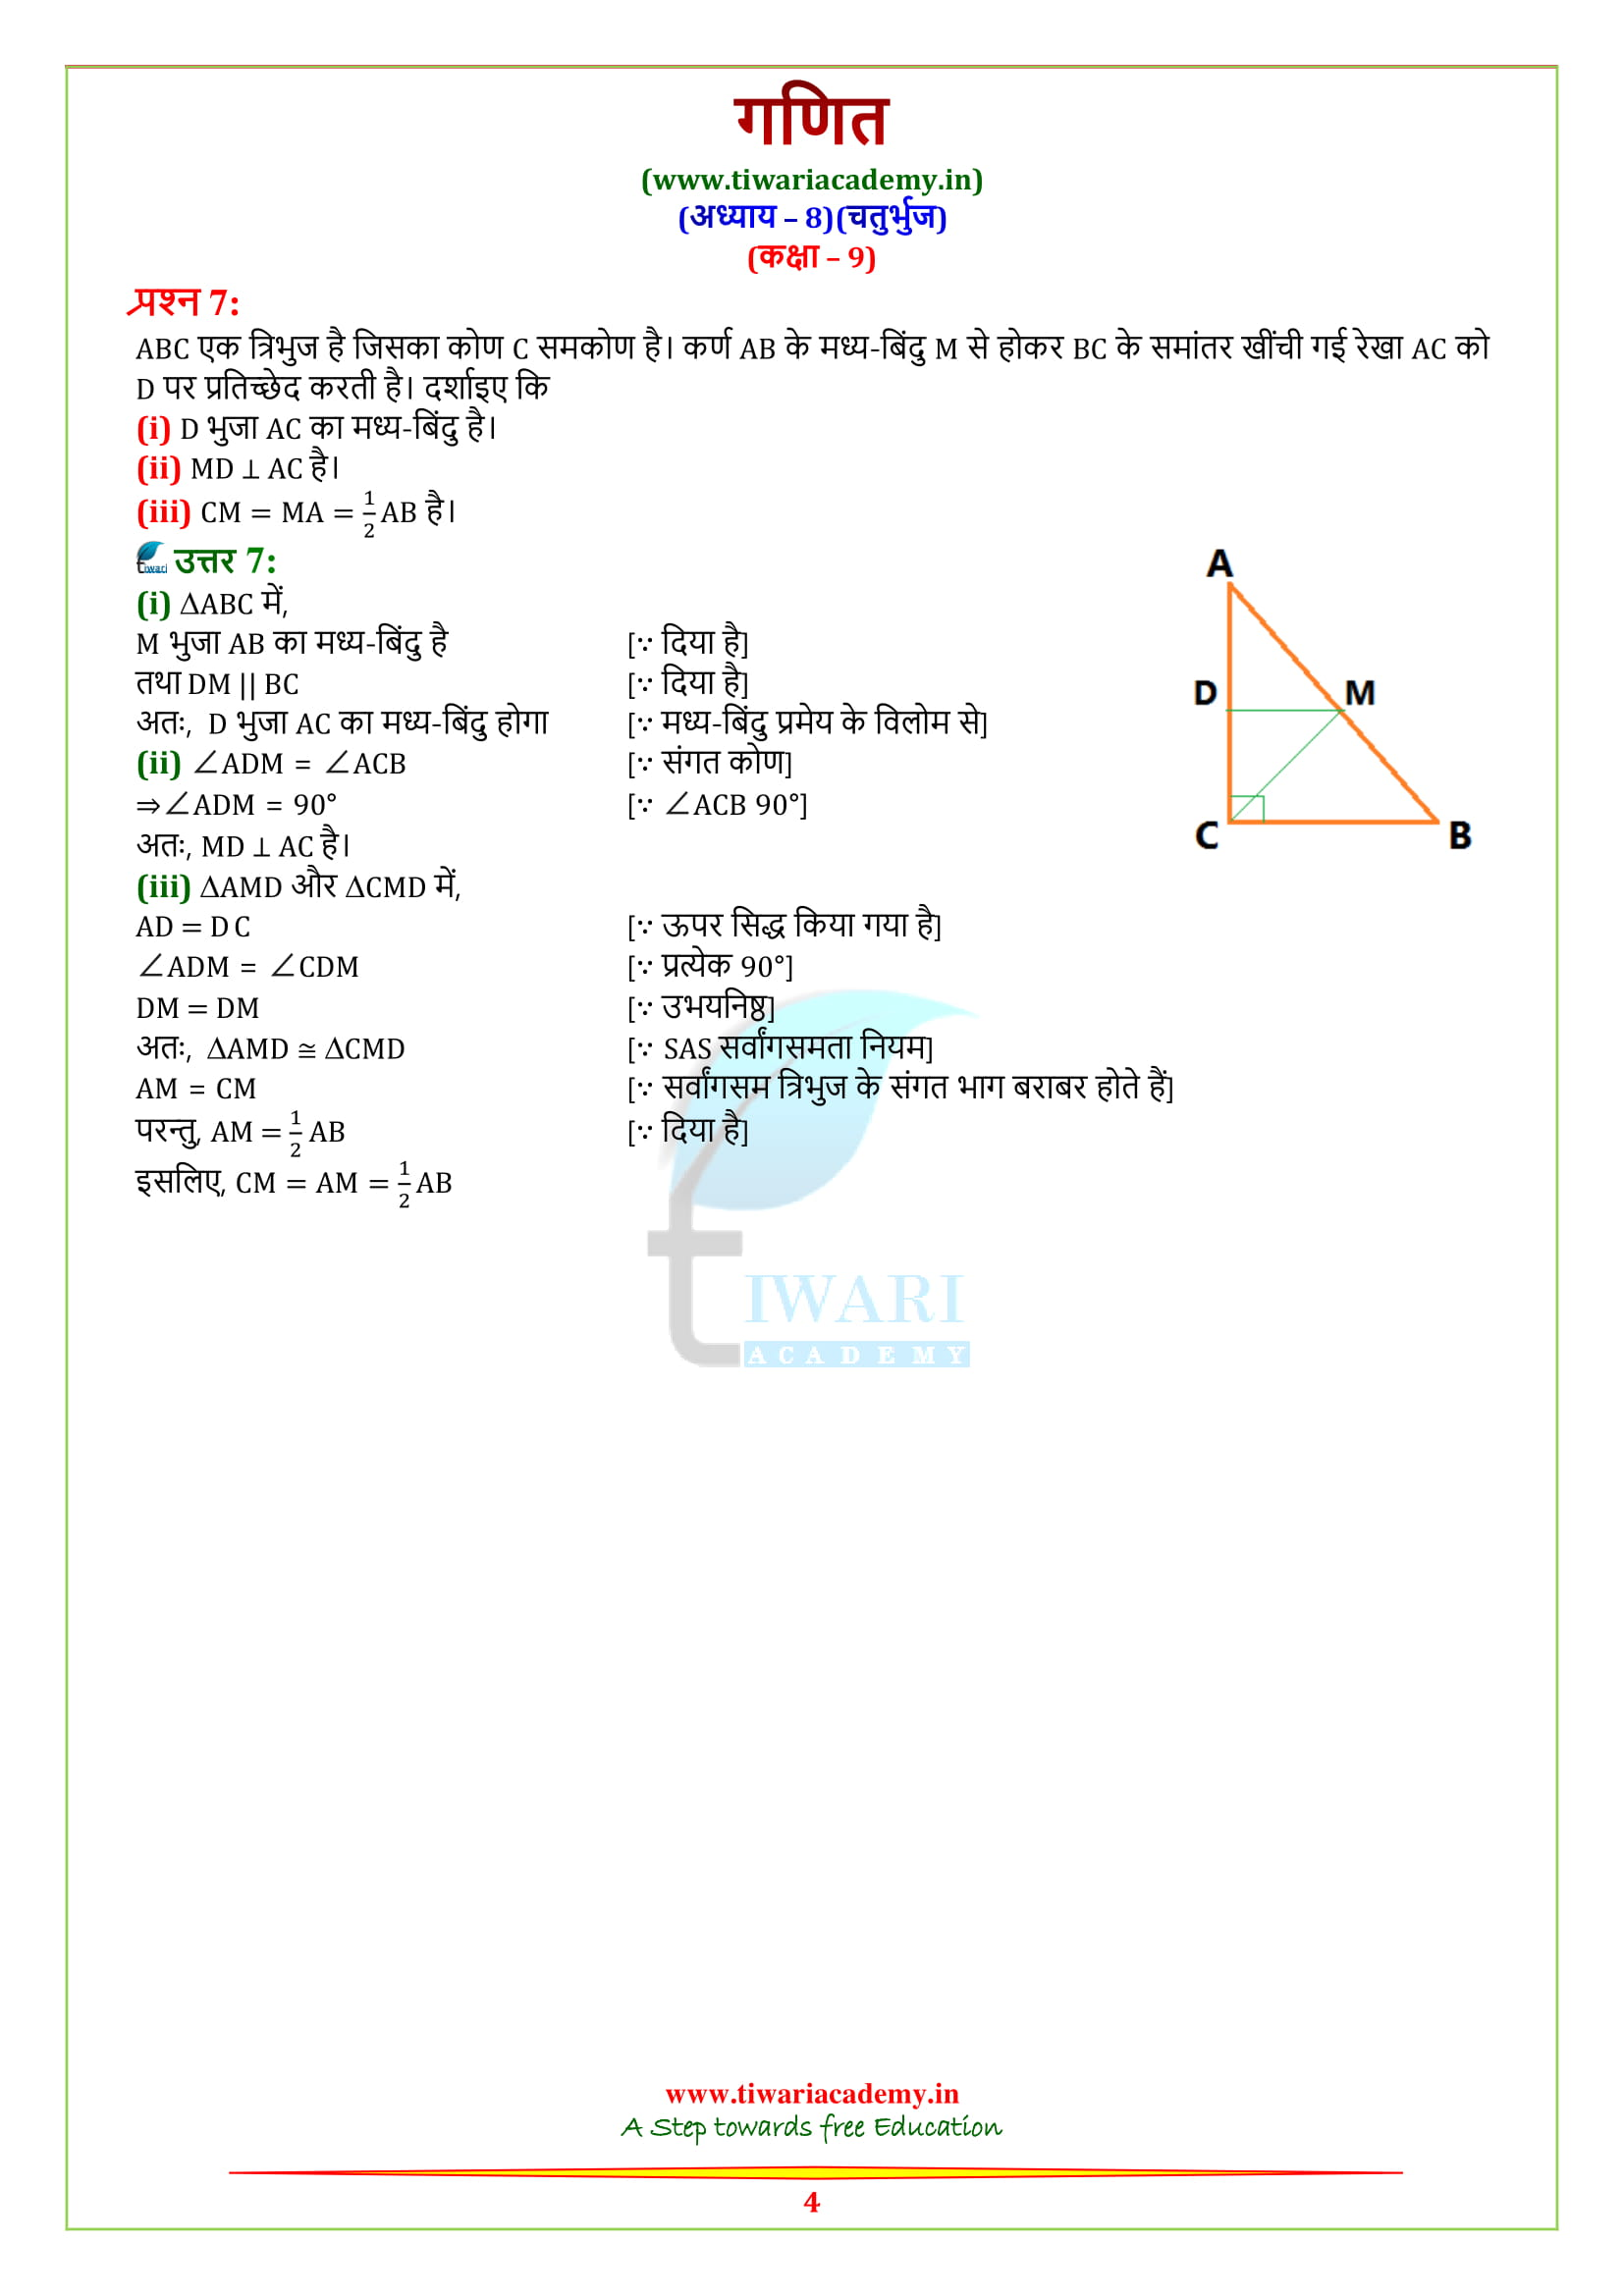 Class 9 Maths Exercise 8.2 solutions all question answers